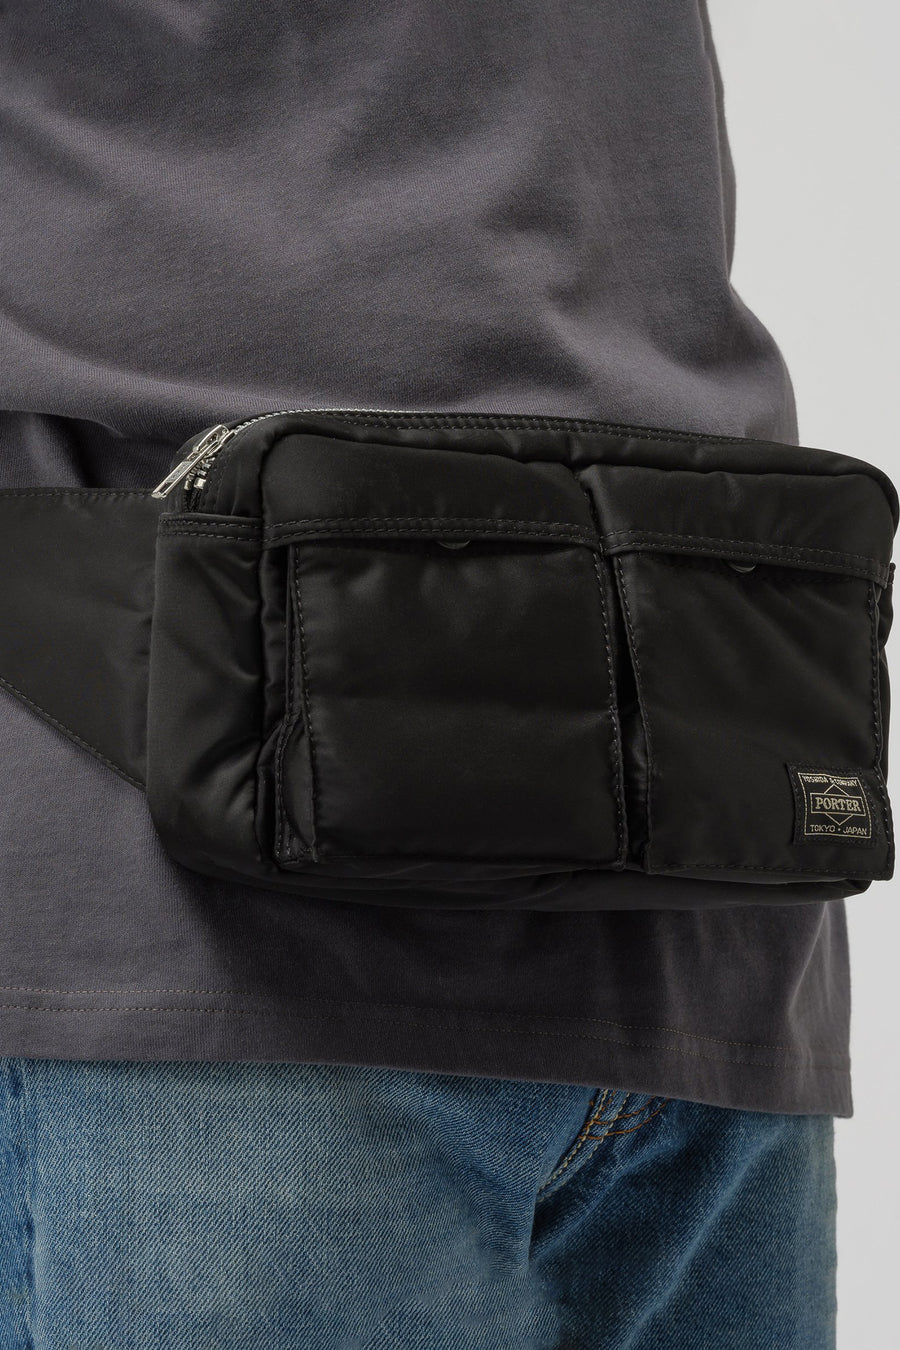 Porter TANKER Waist Bag in Black - Notre